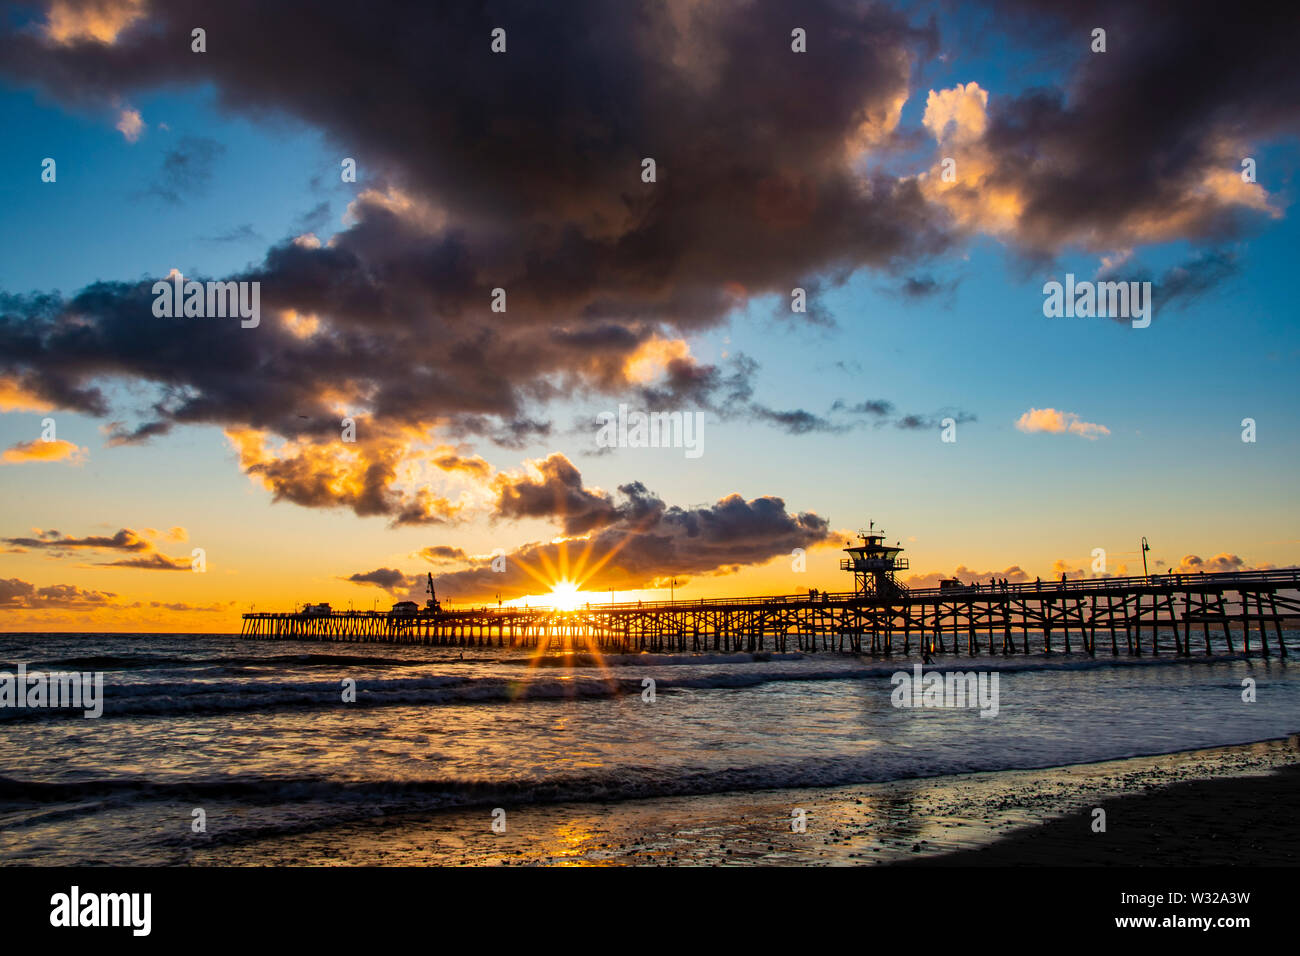 Watching the Sunset through the san clemente pier down at the beach on the sand Stock Photo